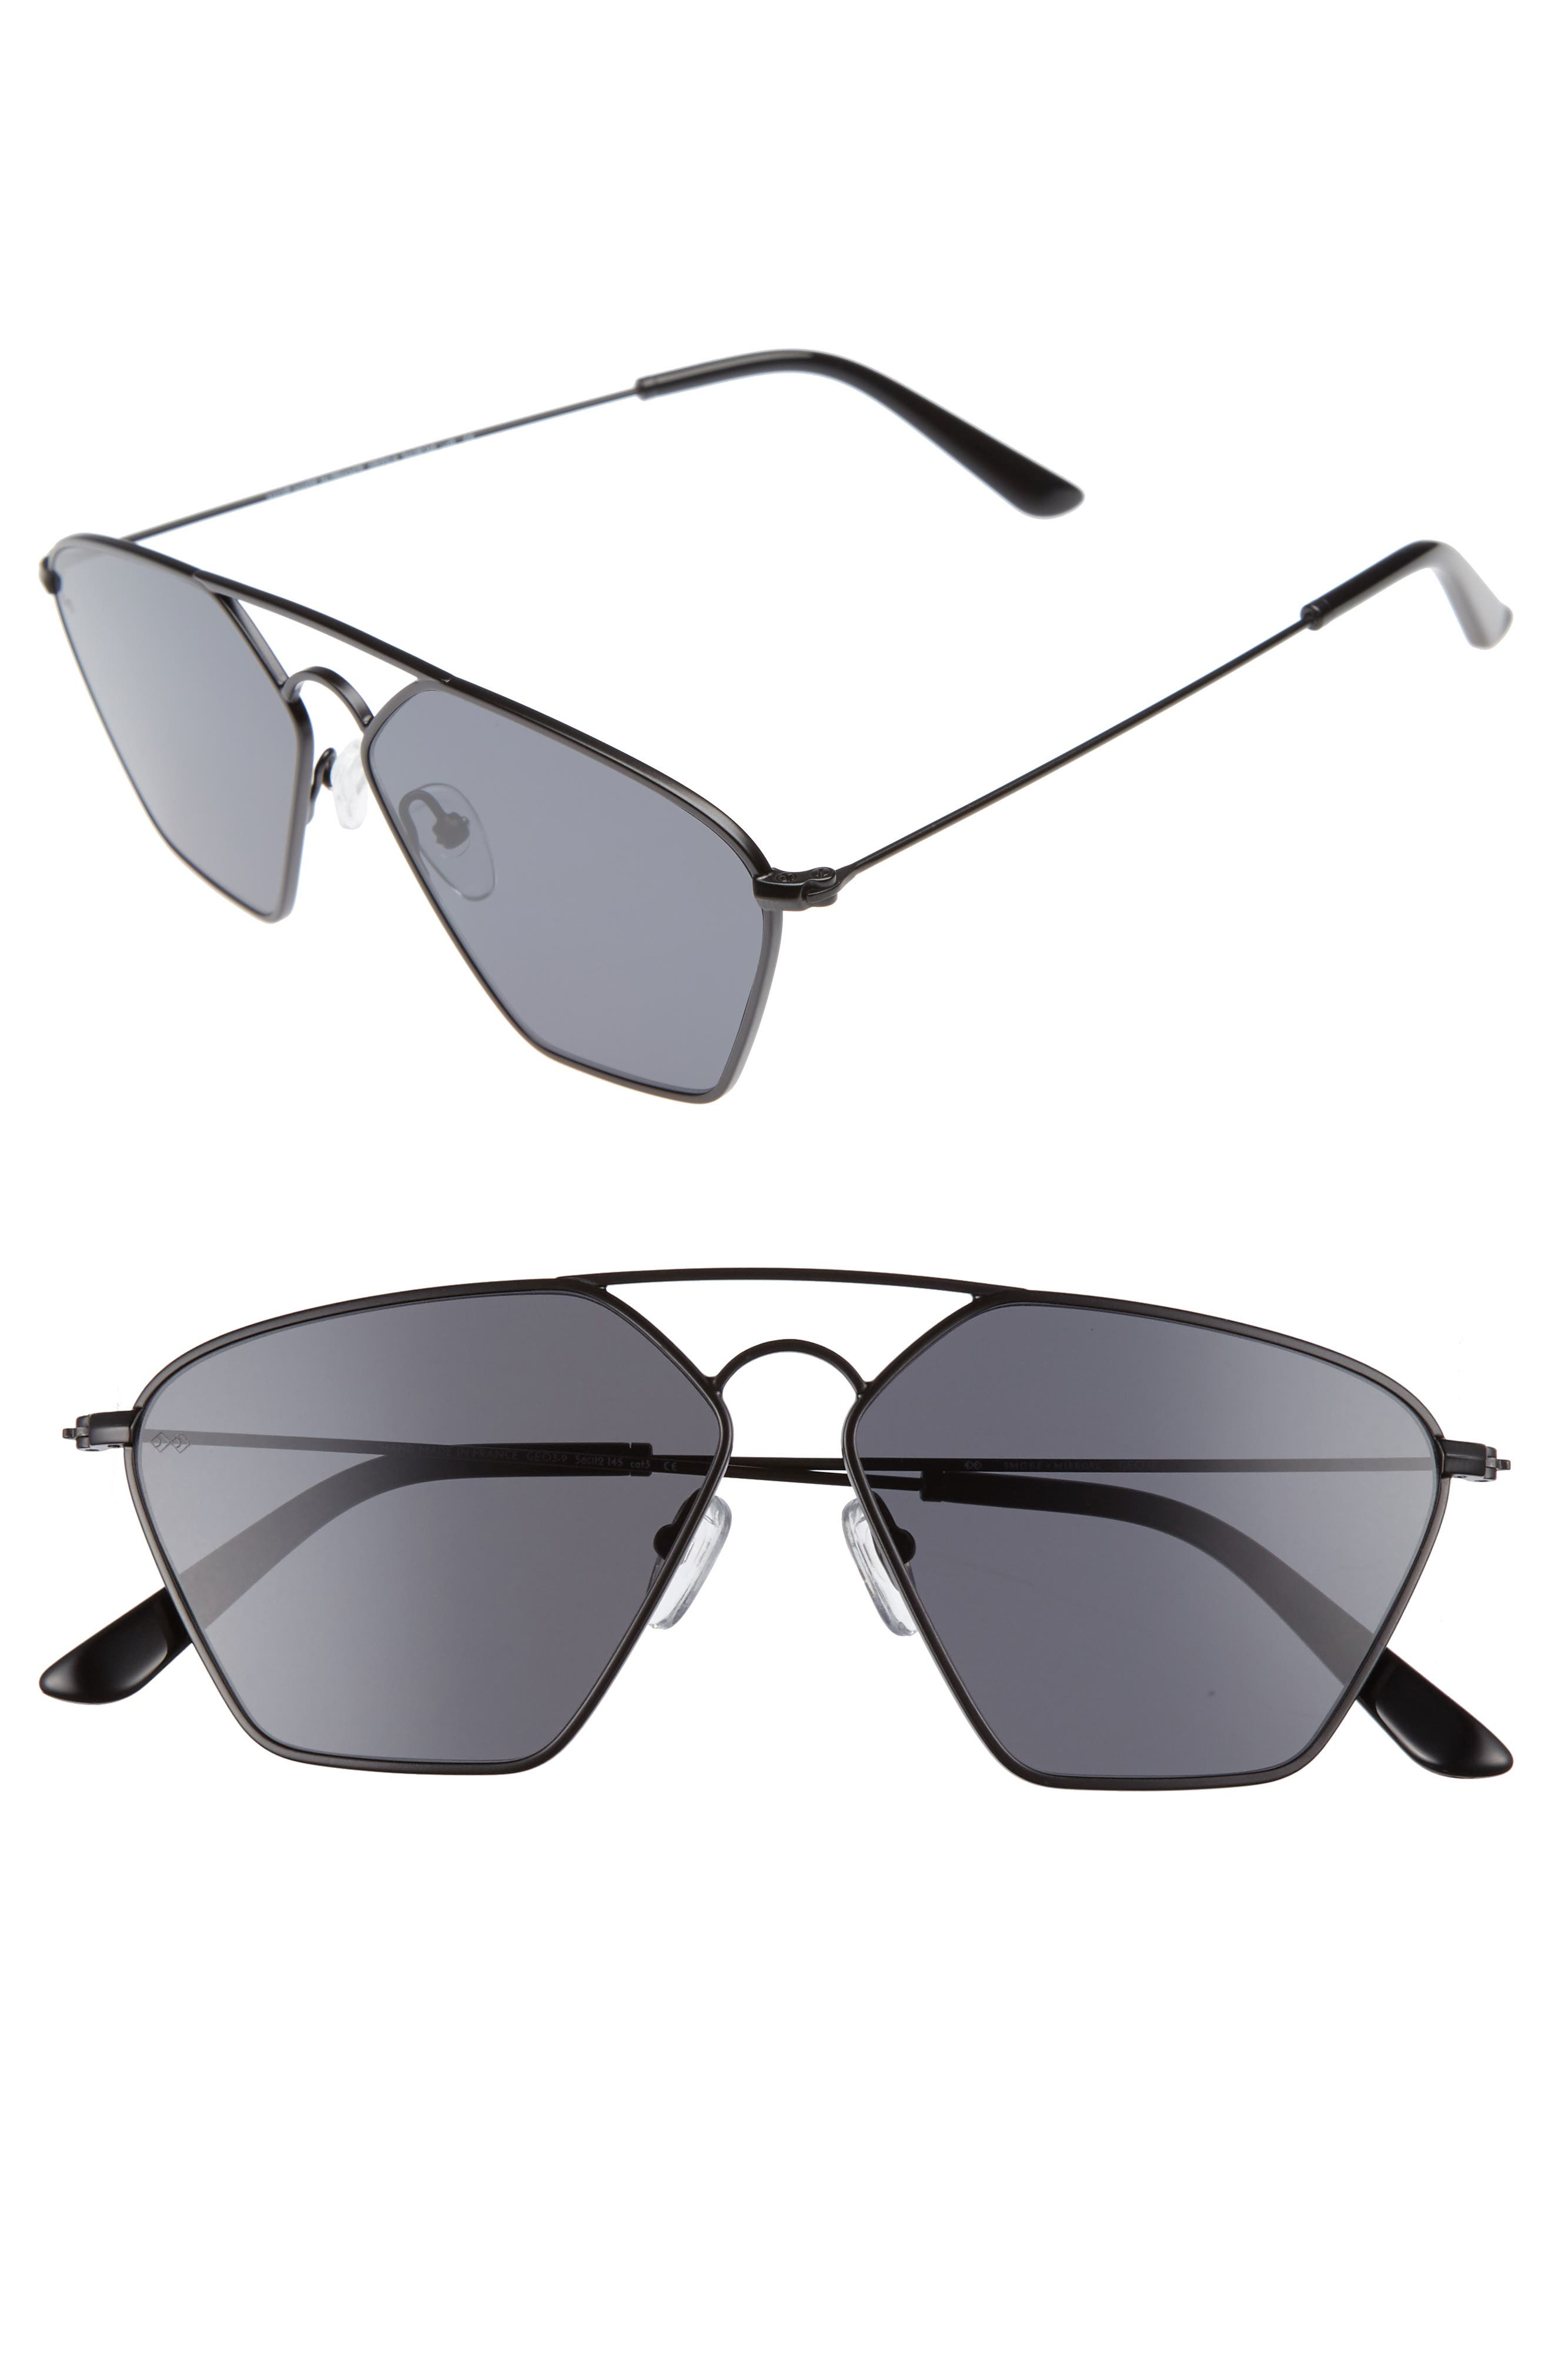 Geo 3 56mm Retro Sunglasses,                         Main,                         color, Matte Black/ Dark Black